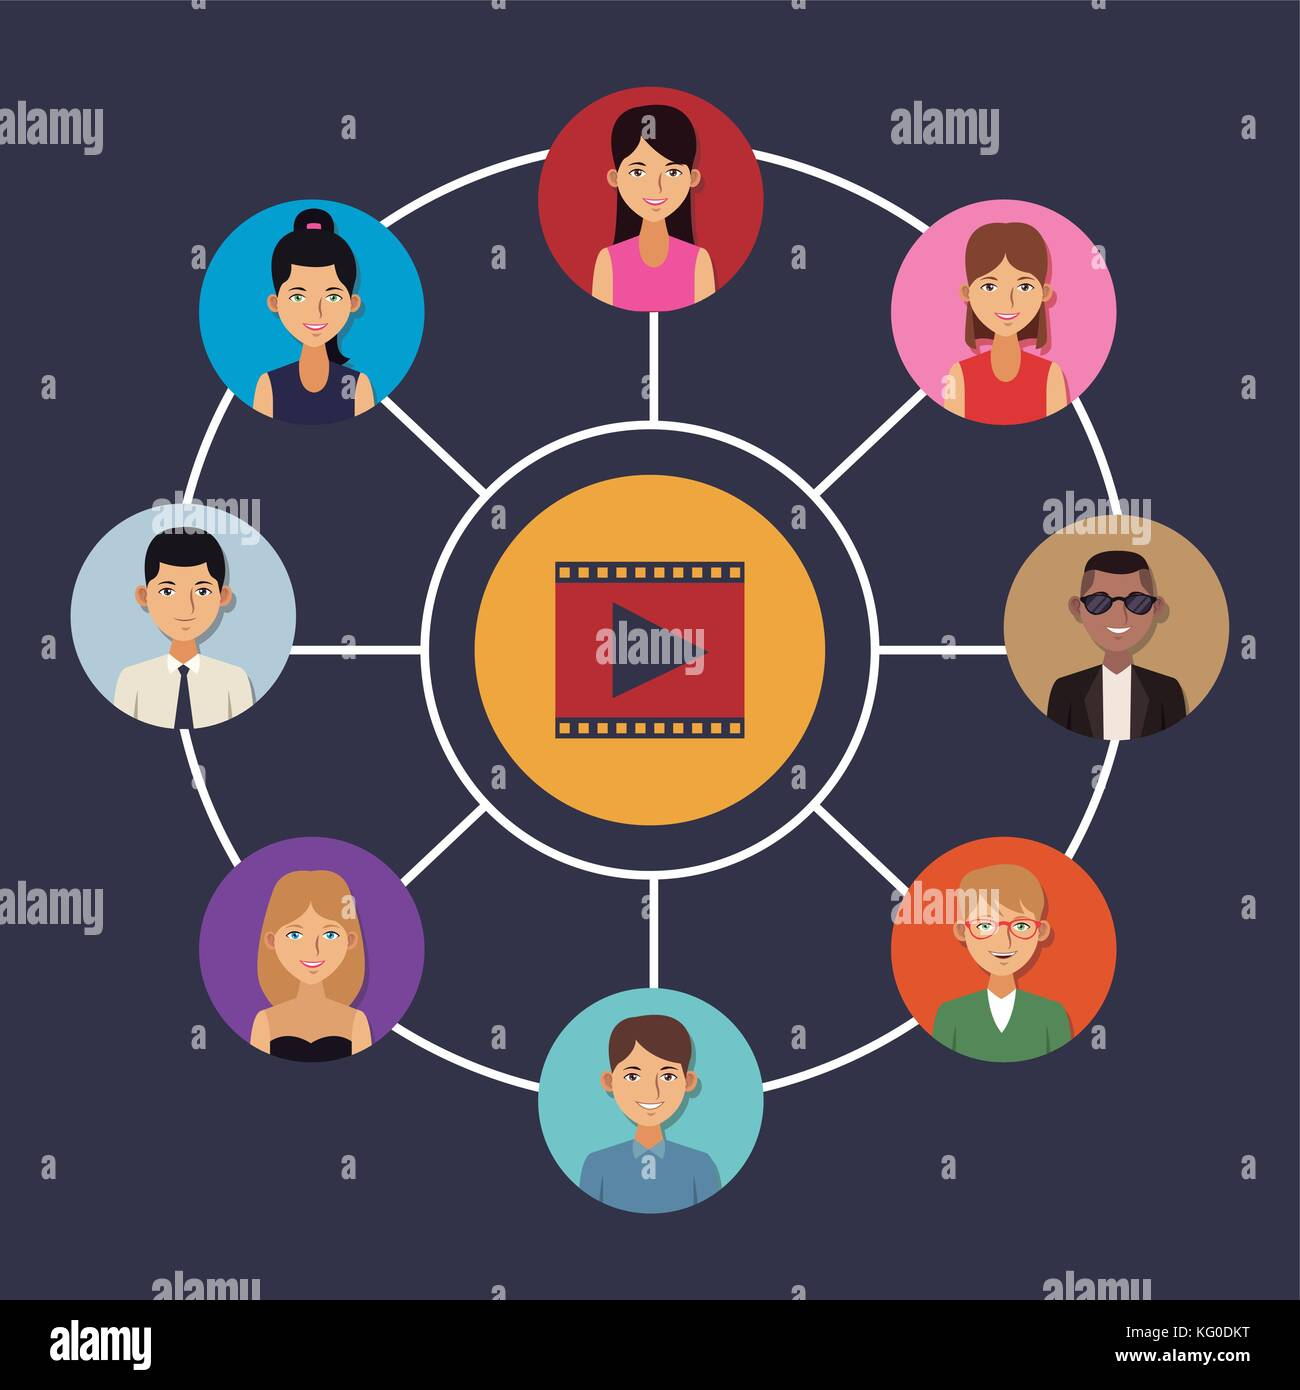 Viral content and social networks - Stock Image